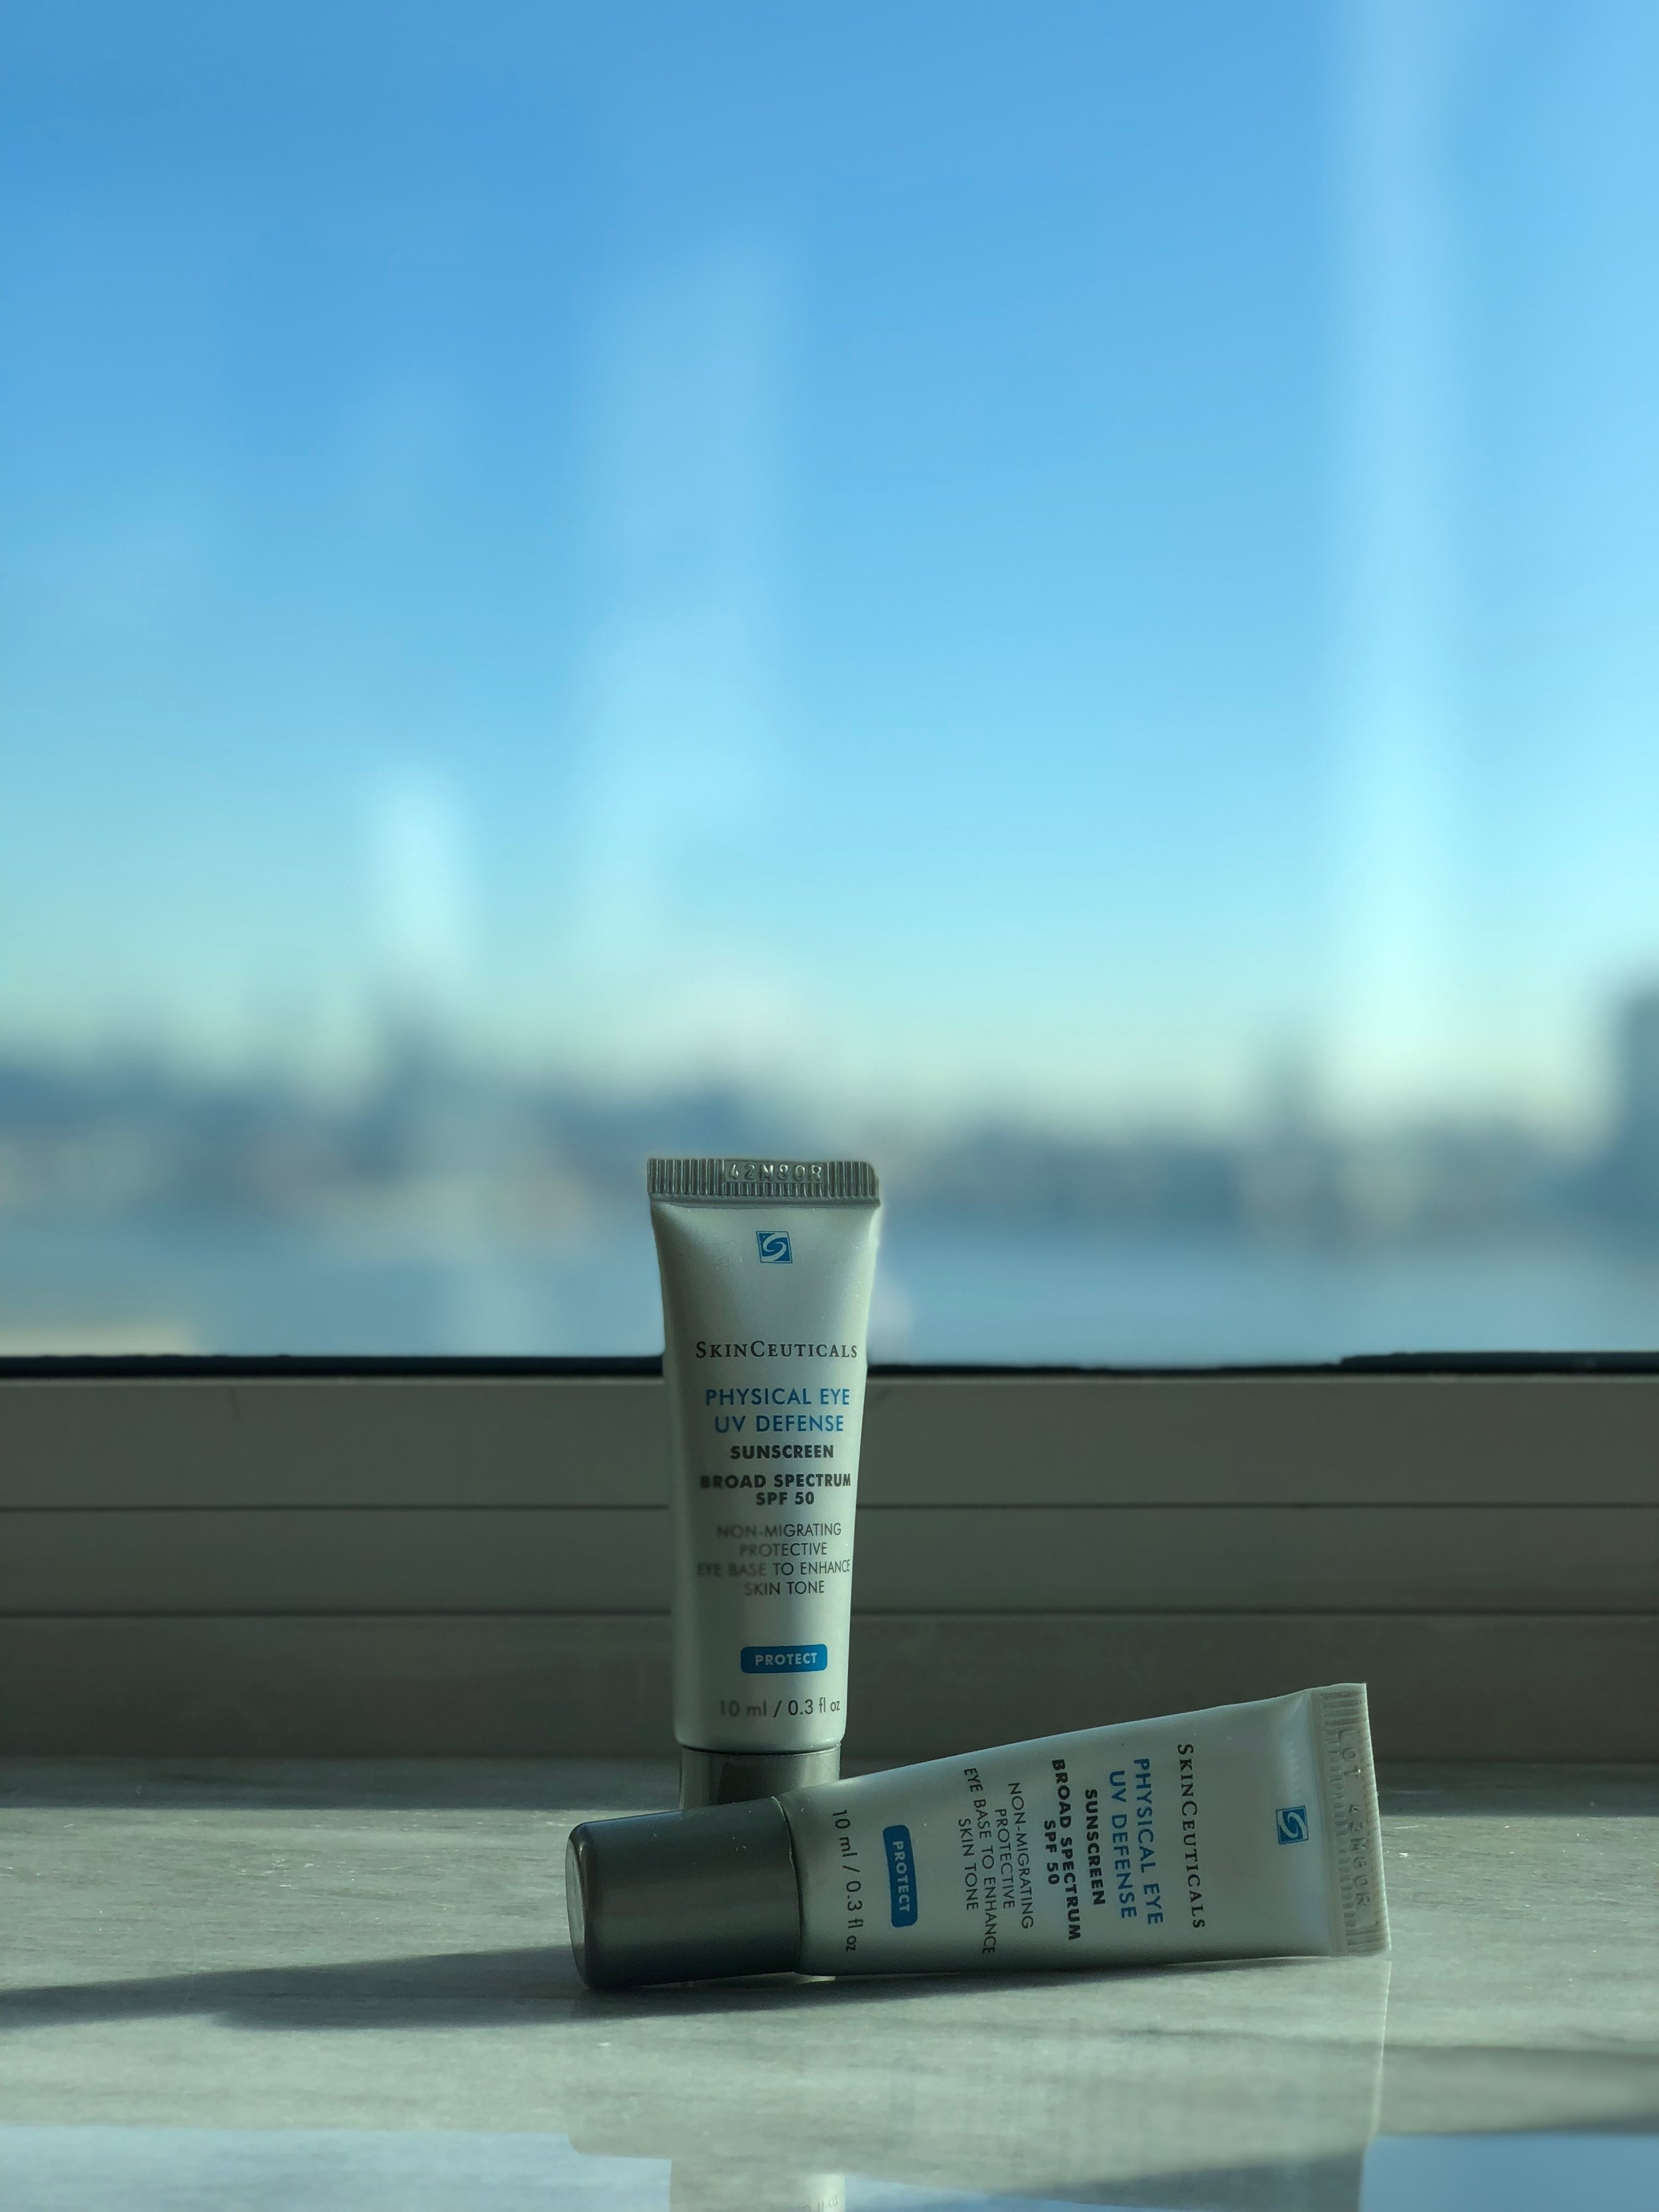 A longtime favorite eye cream with sunscreen is the Skinceuticals Physical Eye UV Defense SPF 50